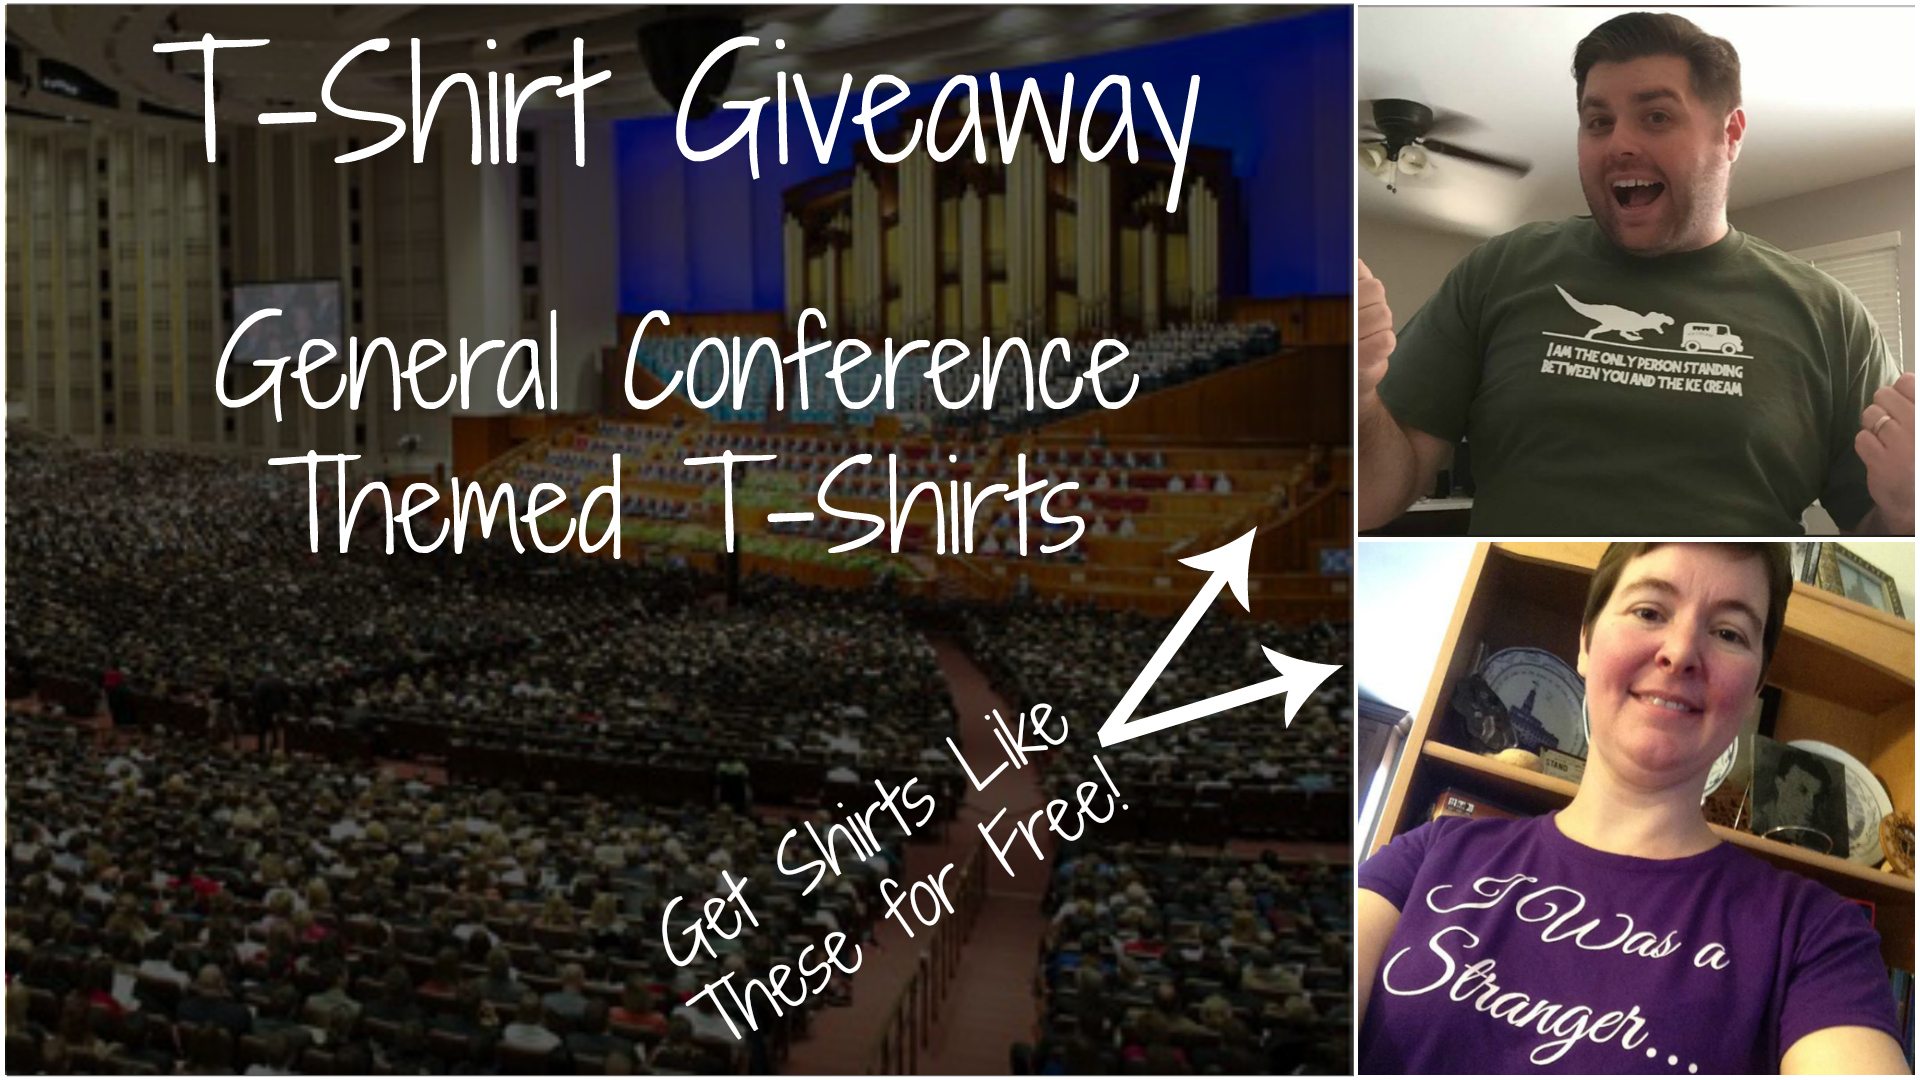 Vote for the Best General Conference Themed T-Shirt